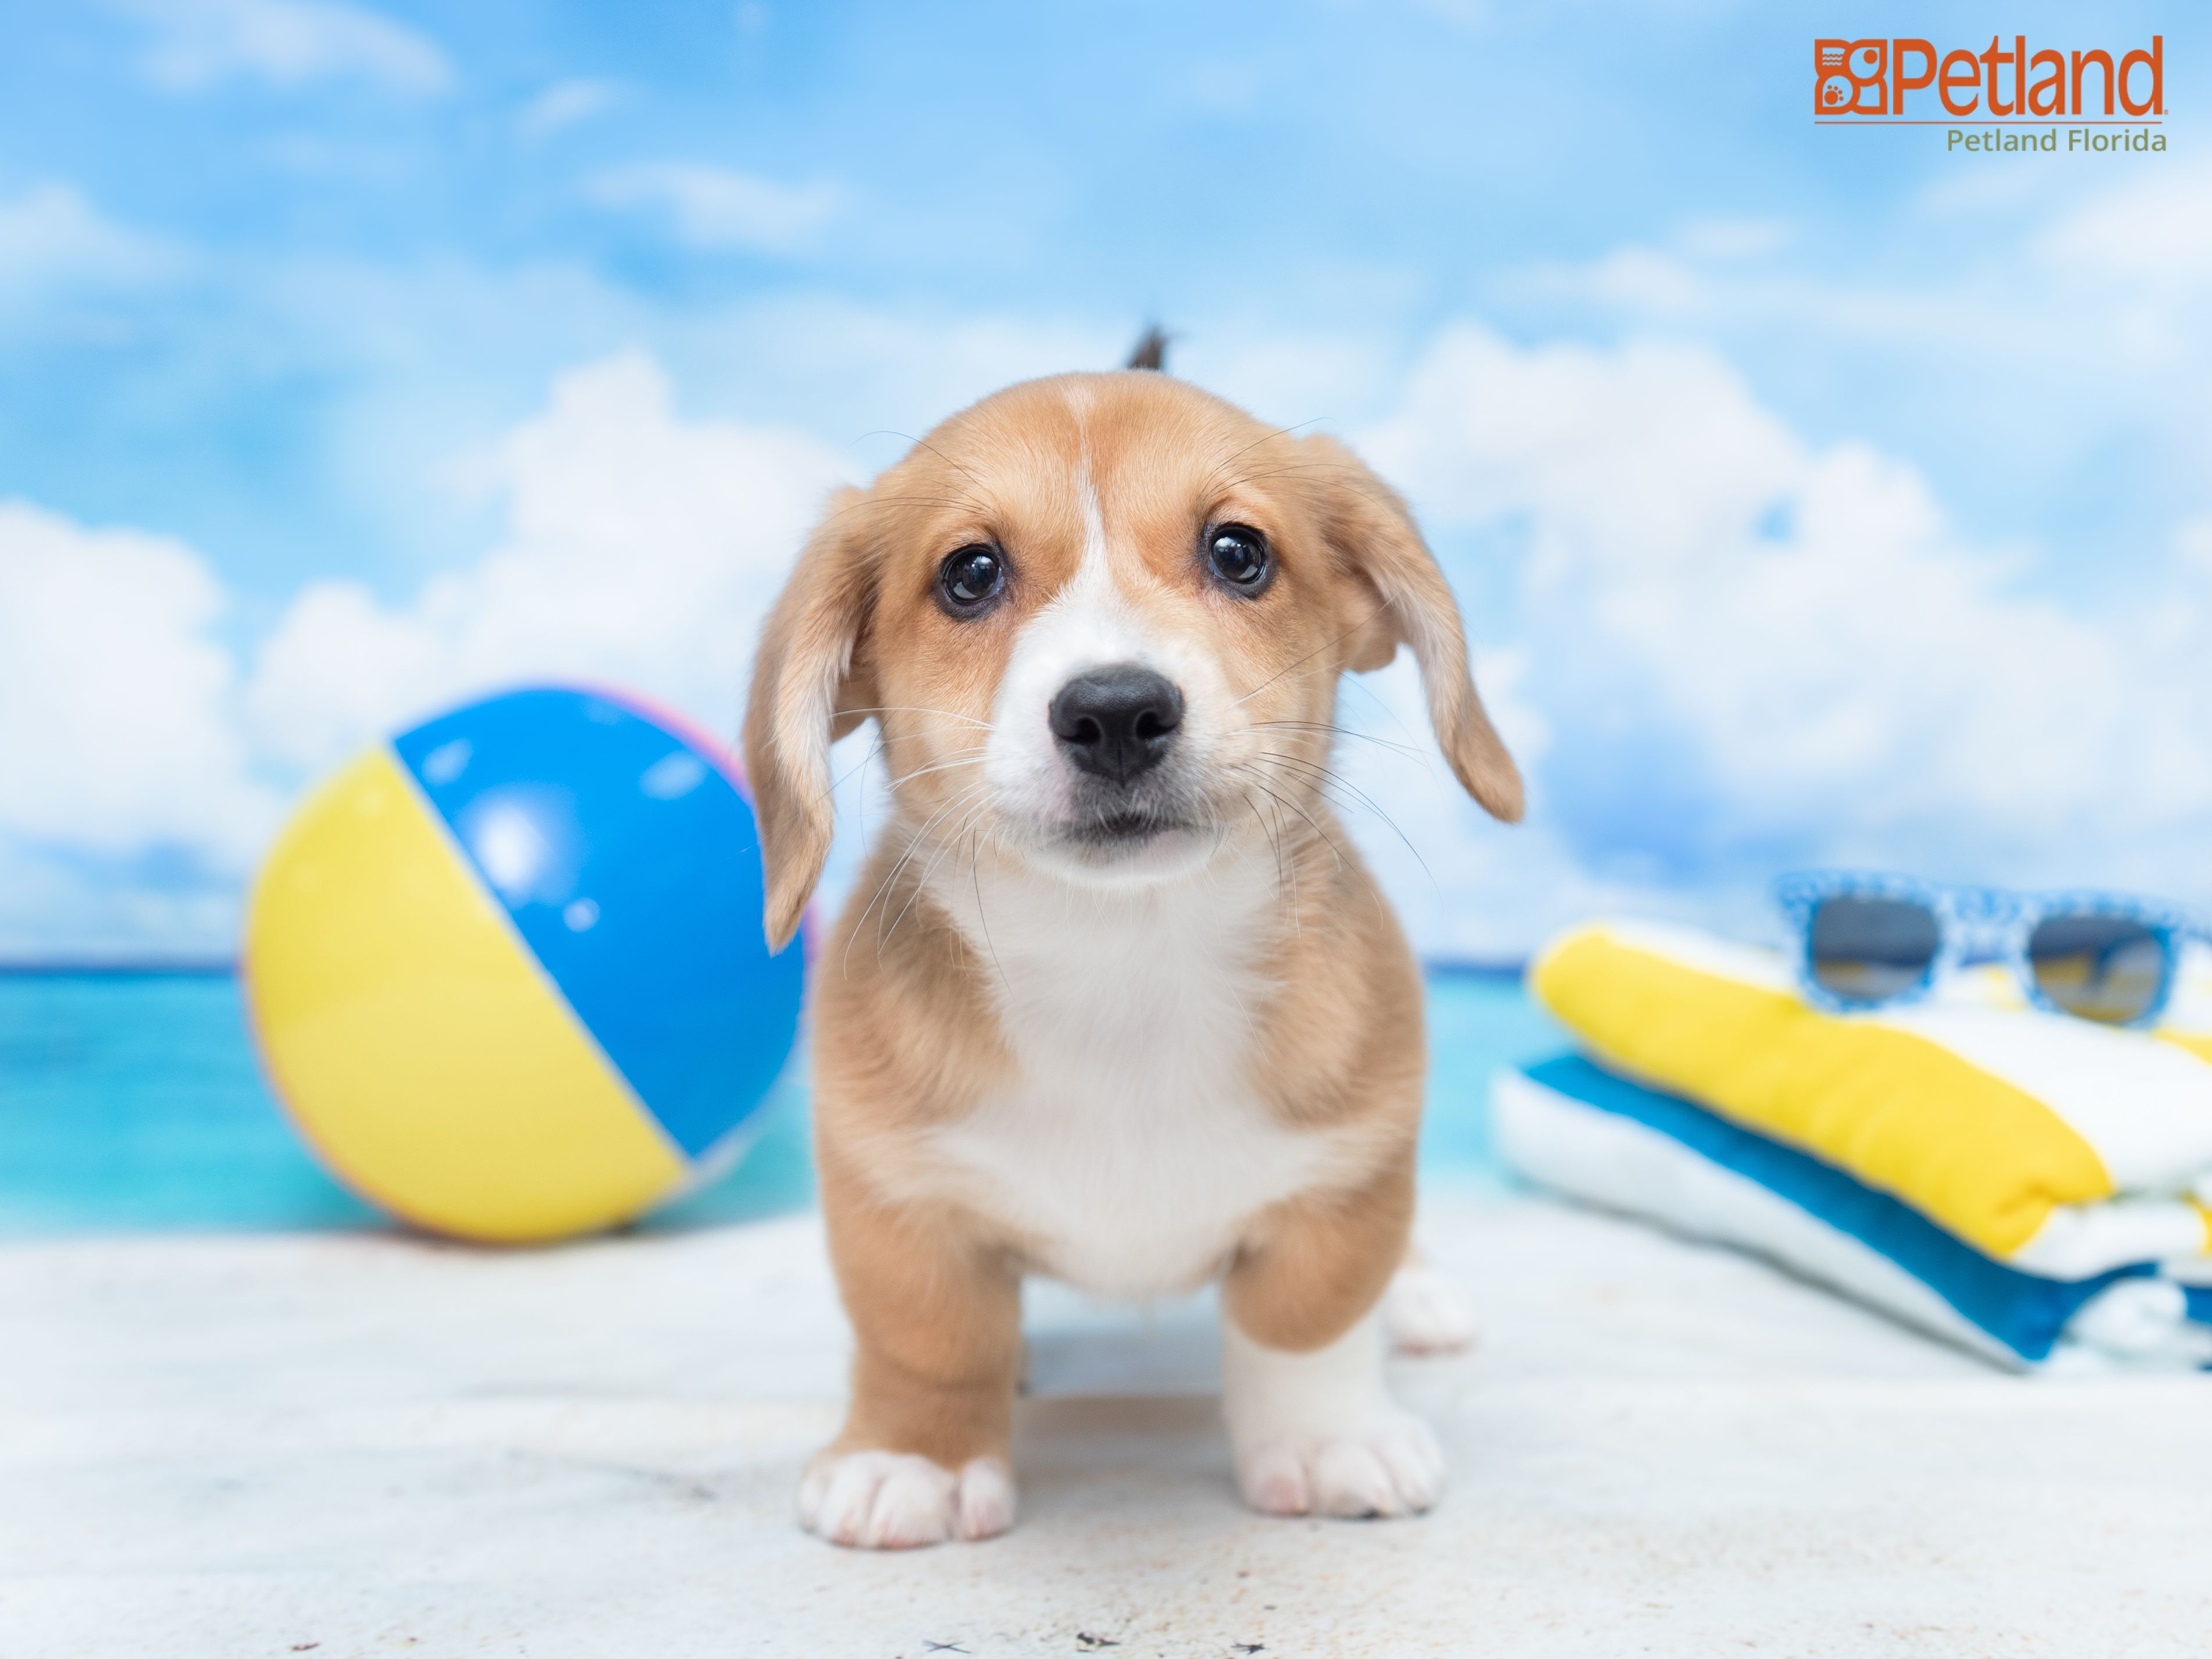 Petland Florida has puppies for sale! Check out all